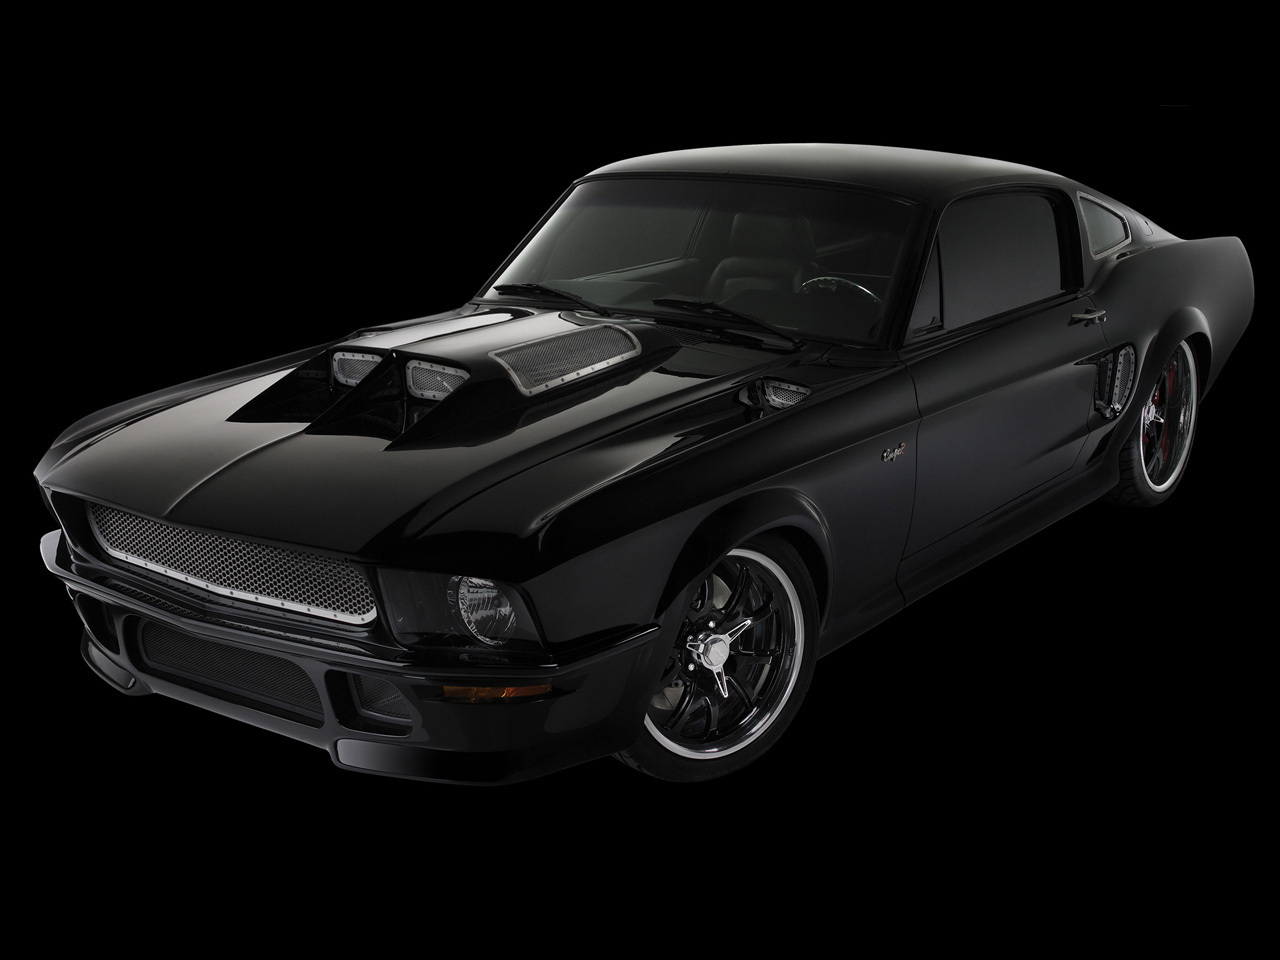 HD Wallpapers Collection: American Muscle Cars Wallpaper